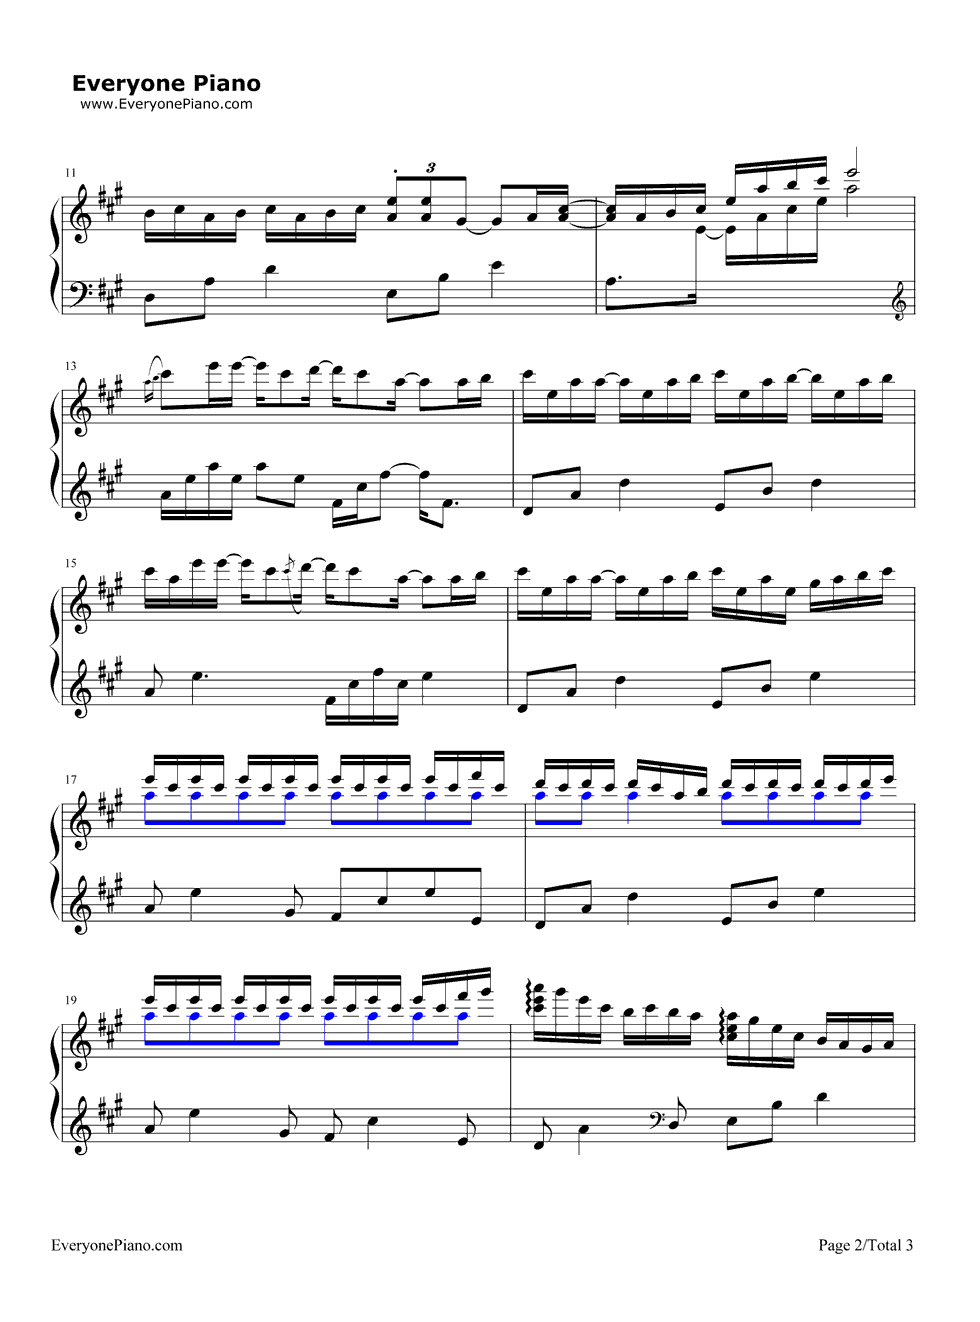 Best Piano Sheet Music Free Taylor Swift Songs Image Collection